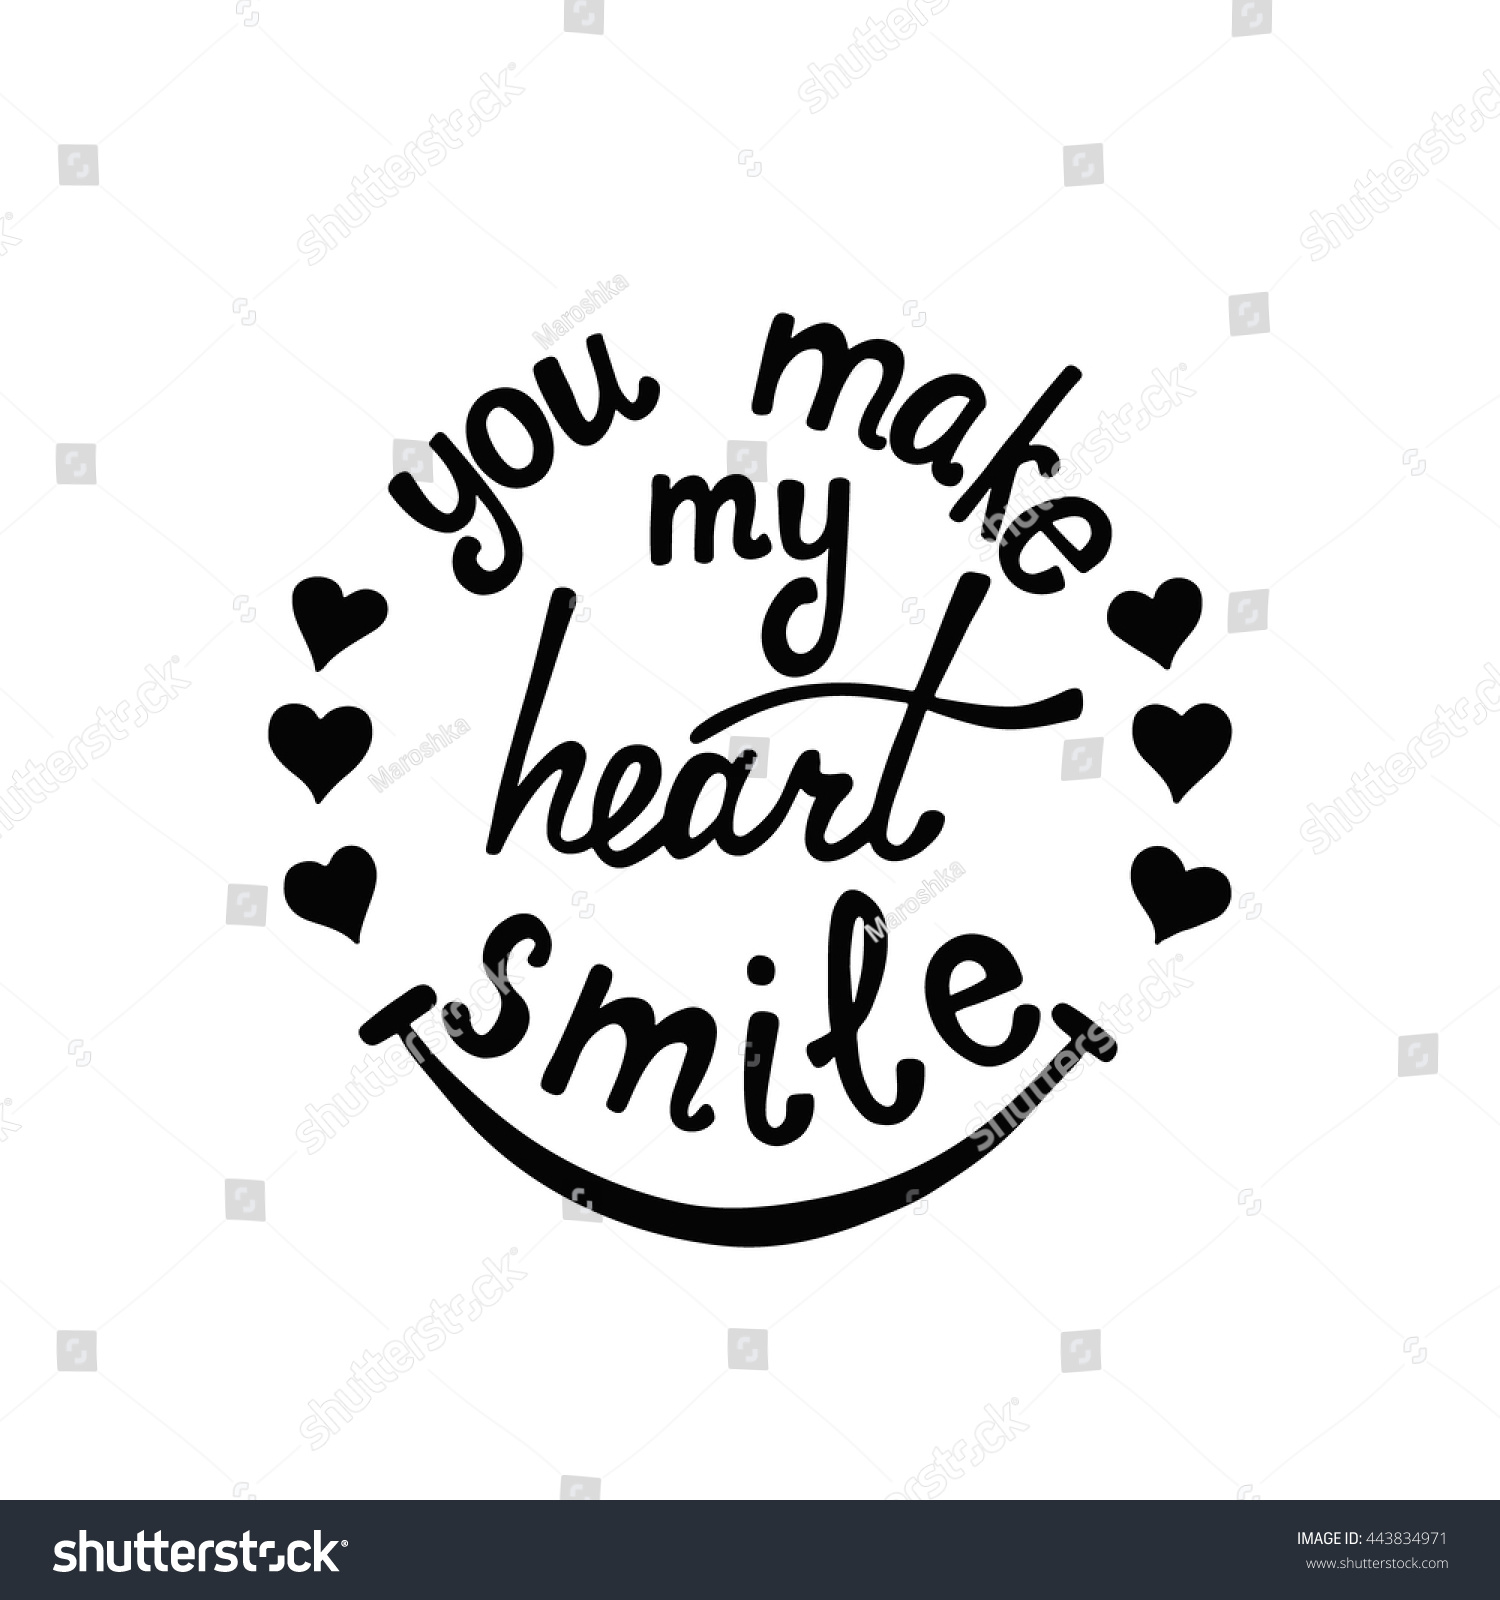 You make my heart smile lettering stock vector